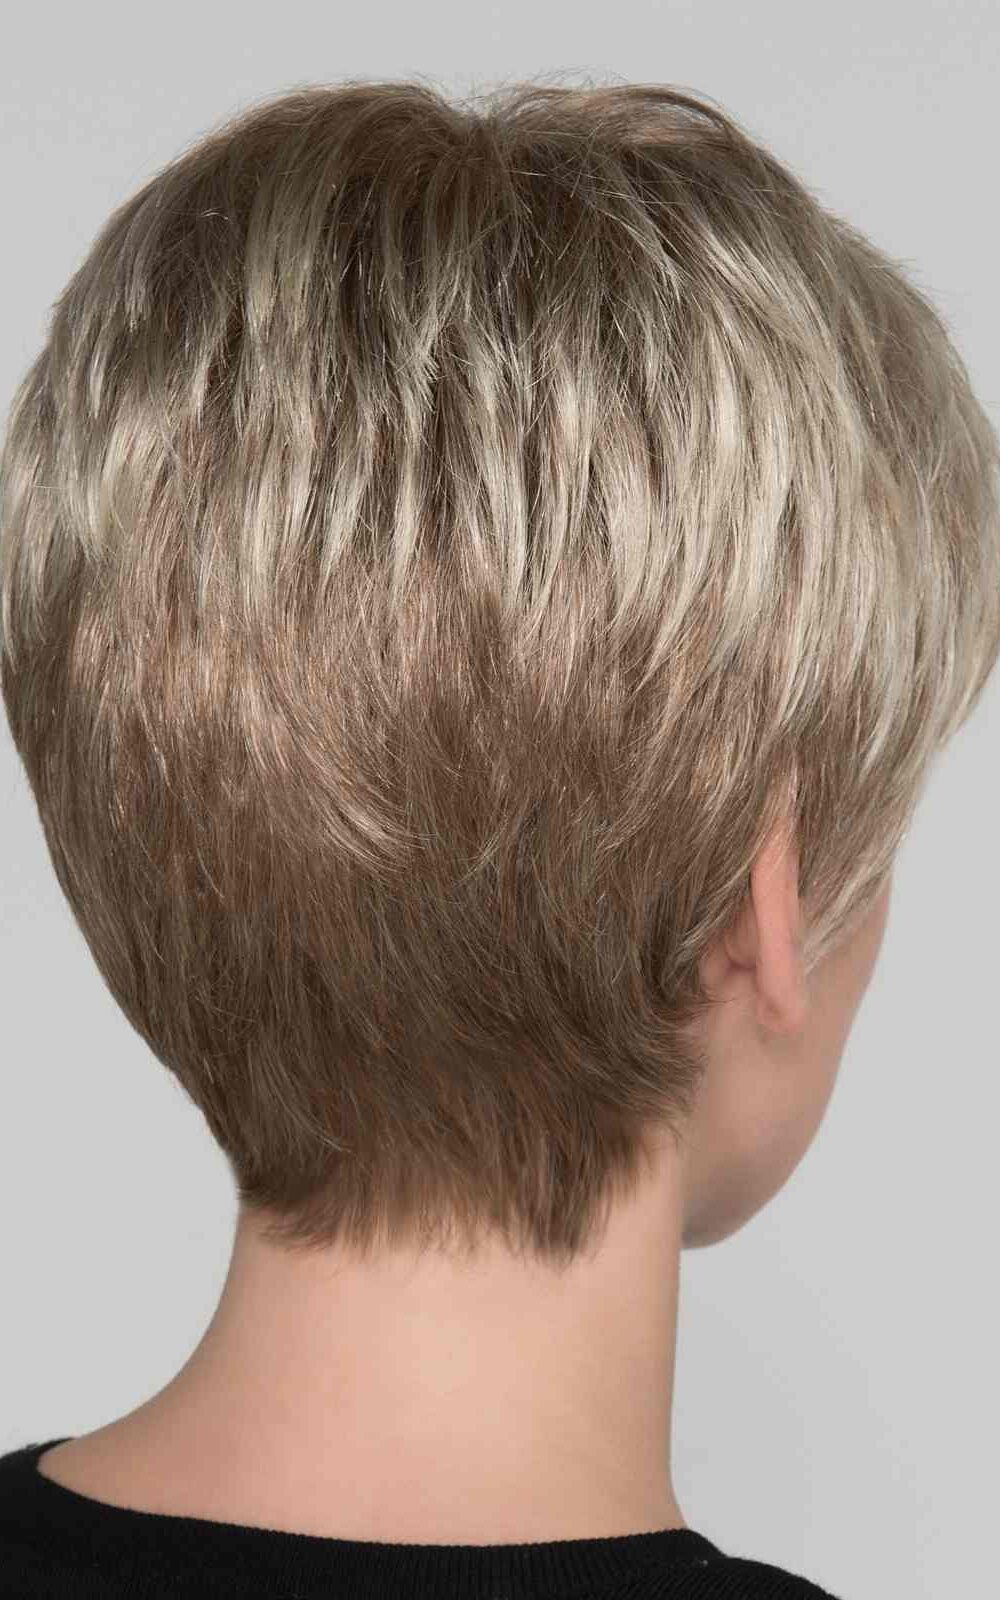 Carol Mono   Snug and secure fit along with the most natural looking head of hair available   Elly-K.com.au